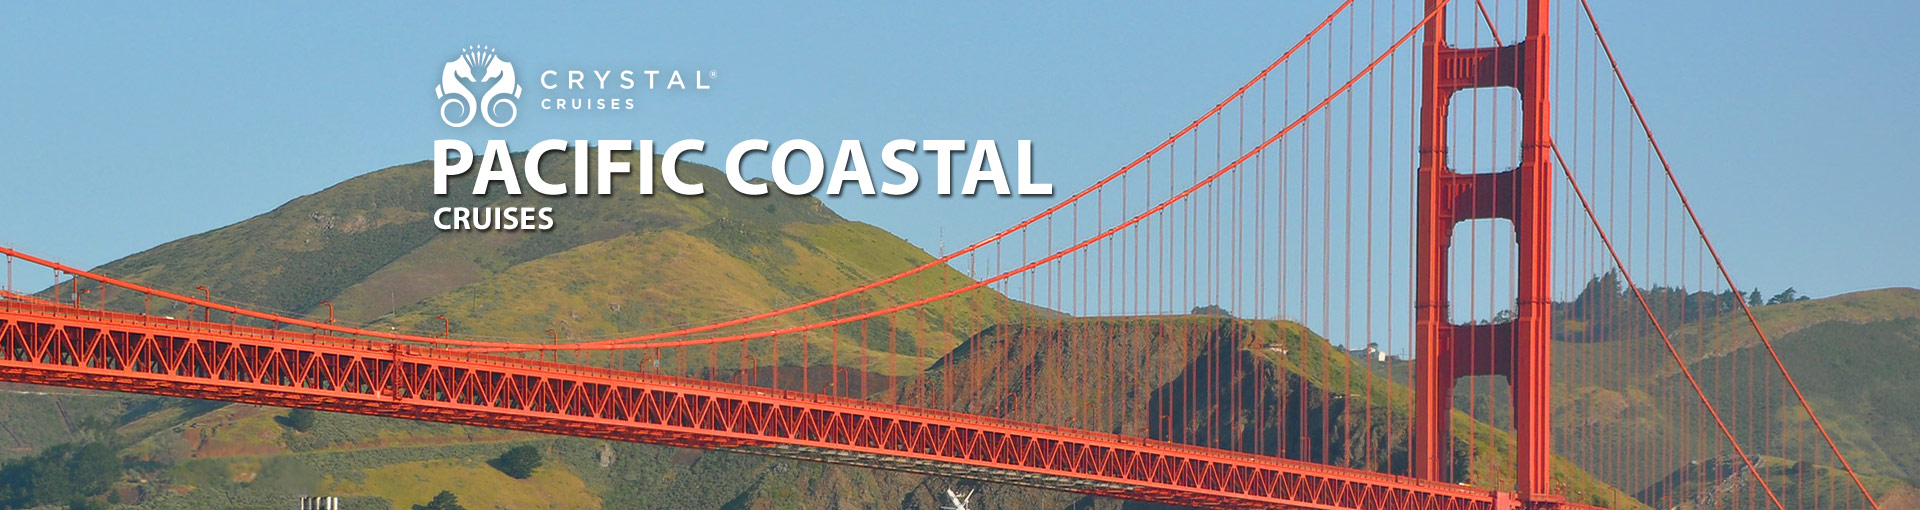 Crystal Cruises Pacific Coast Cruises